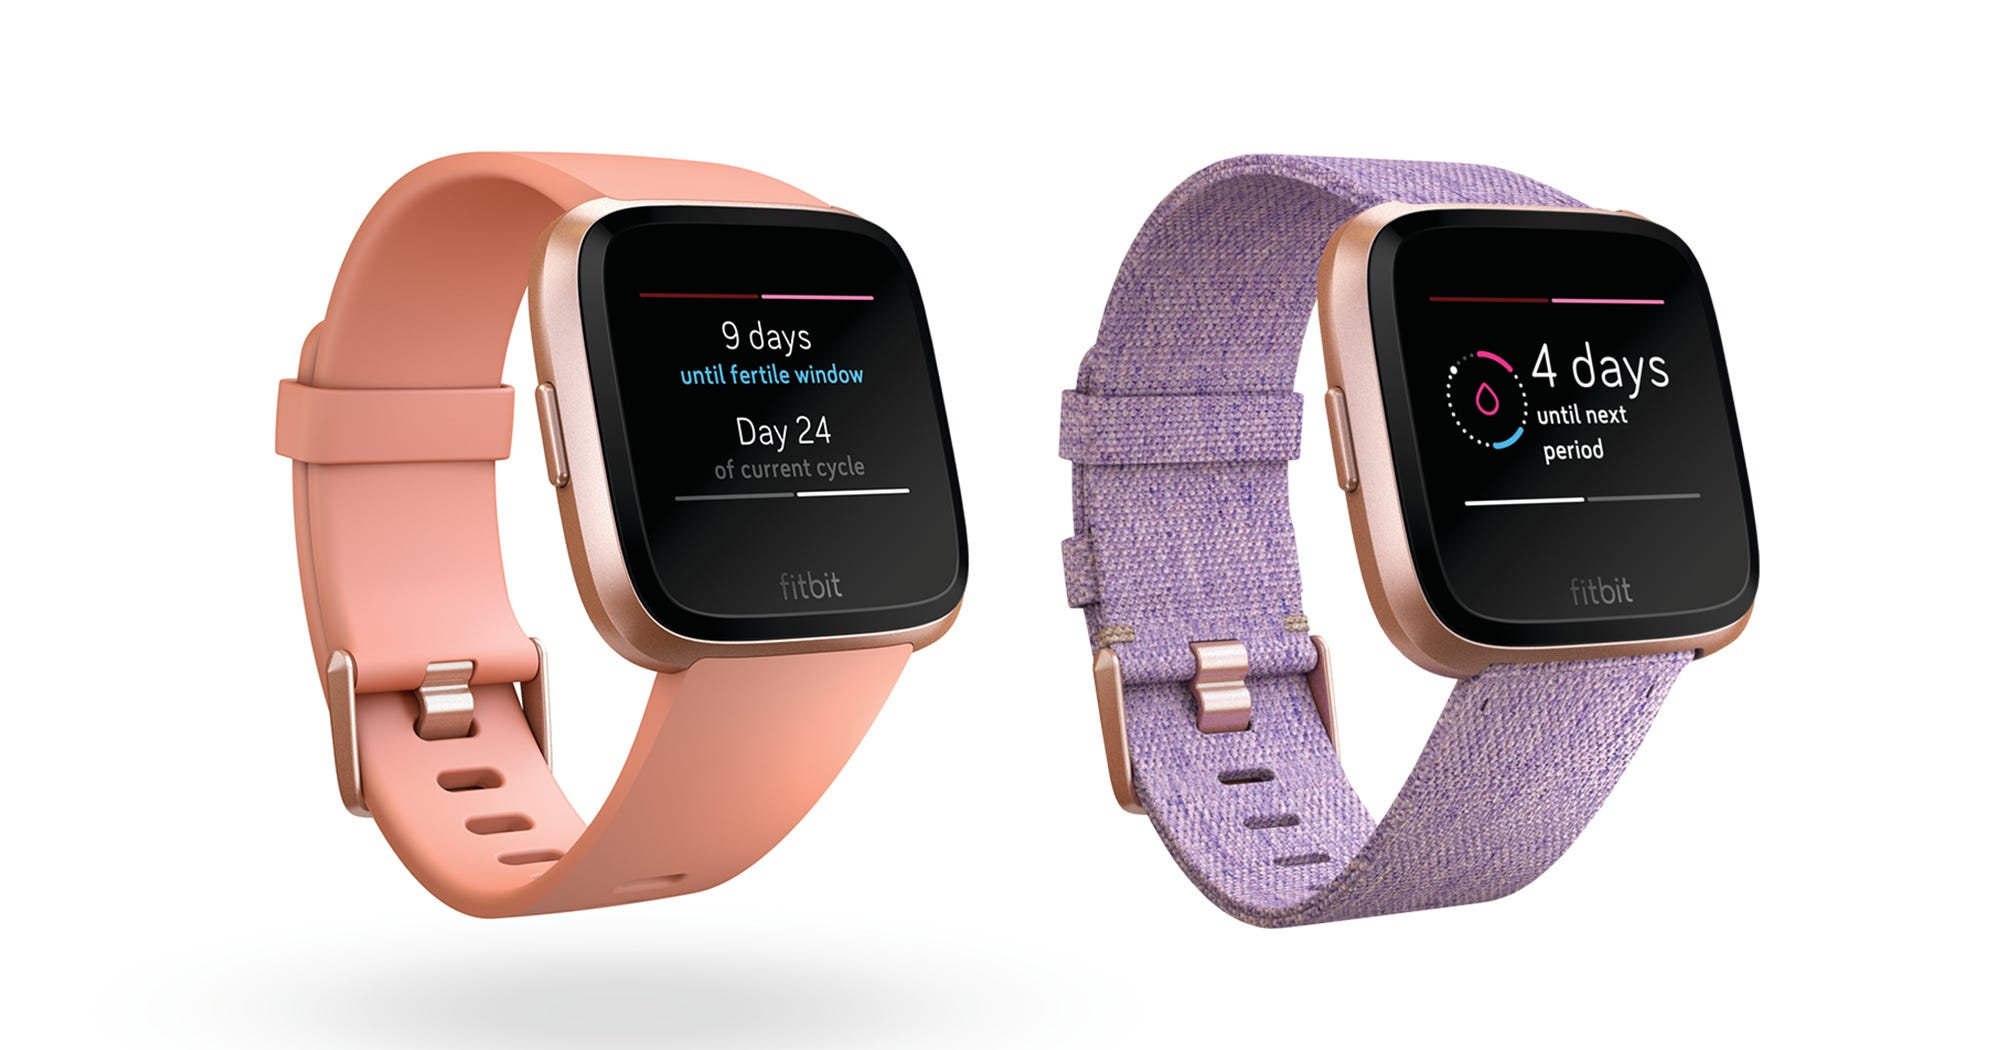 With New Features, Fitbit Aims To Become A Hub For Women's Health Data